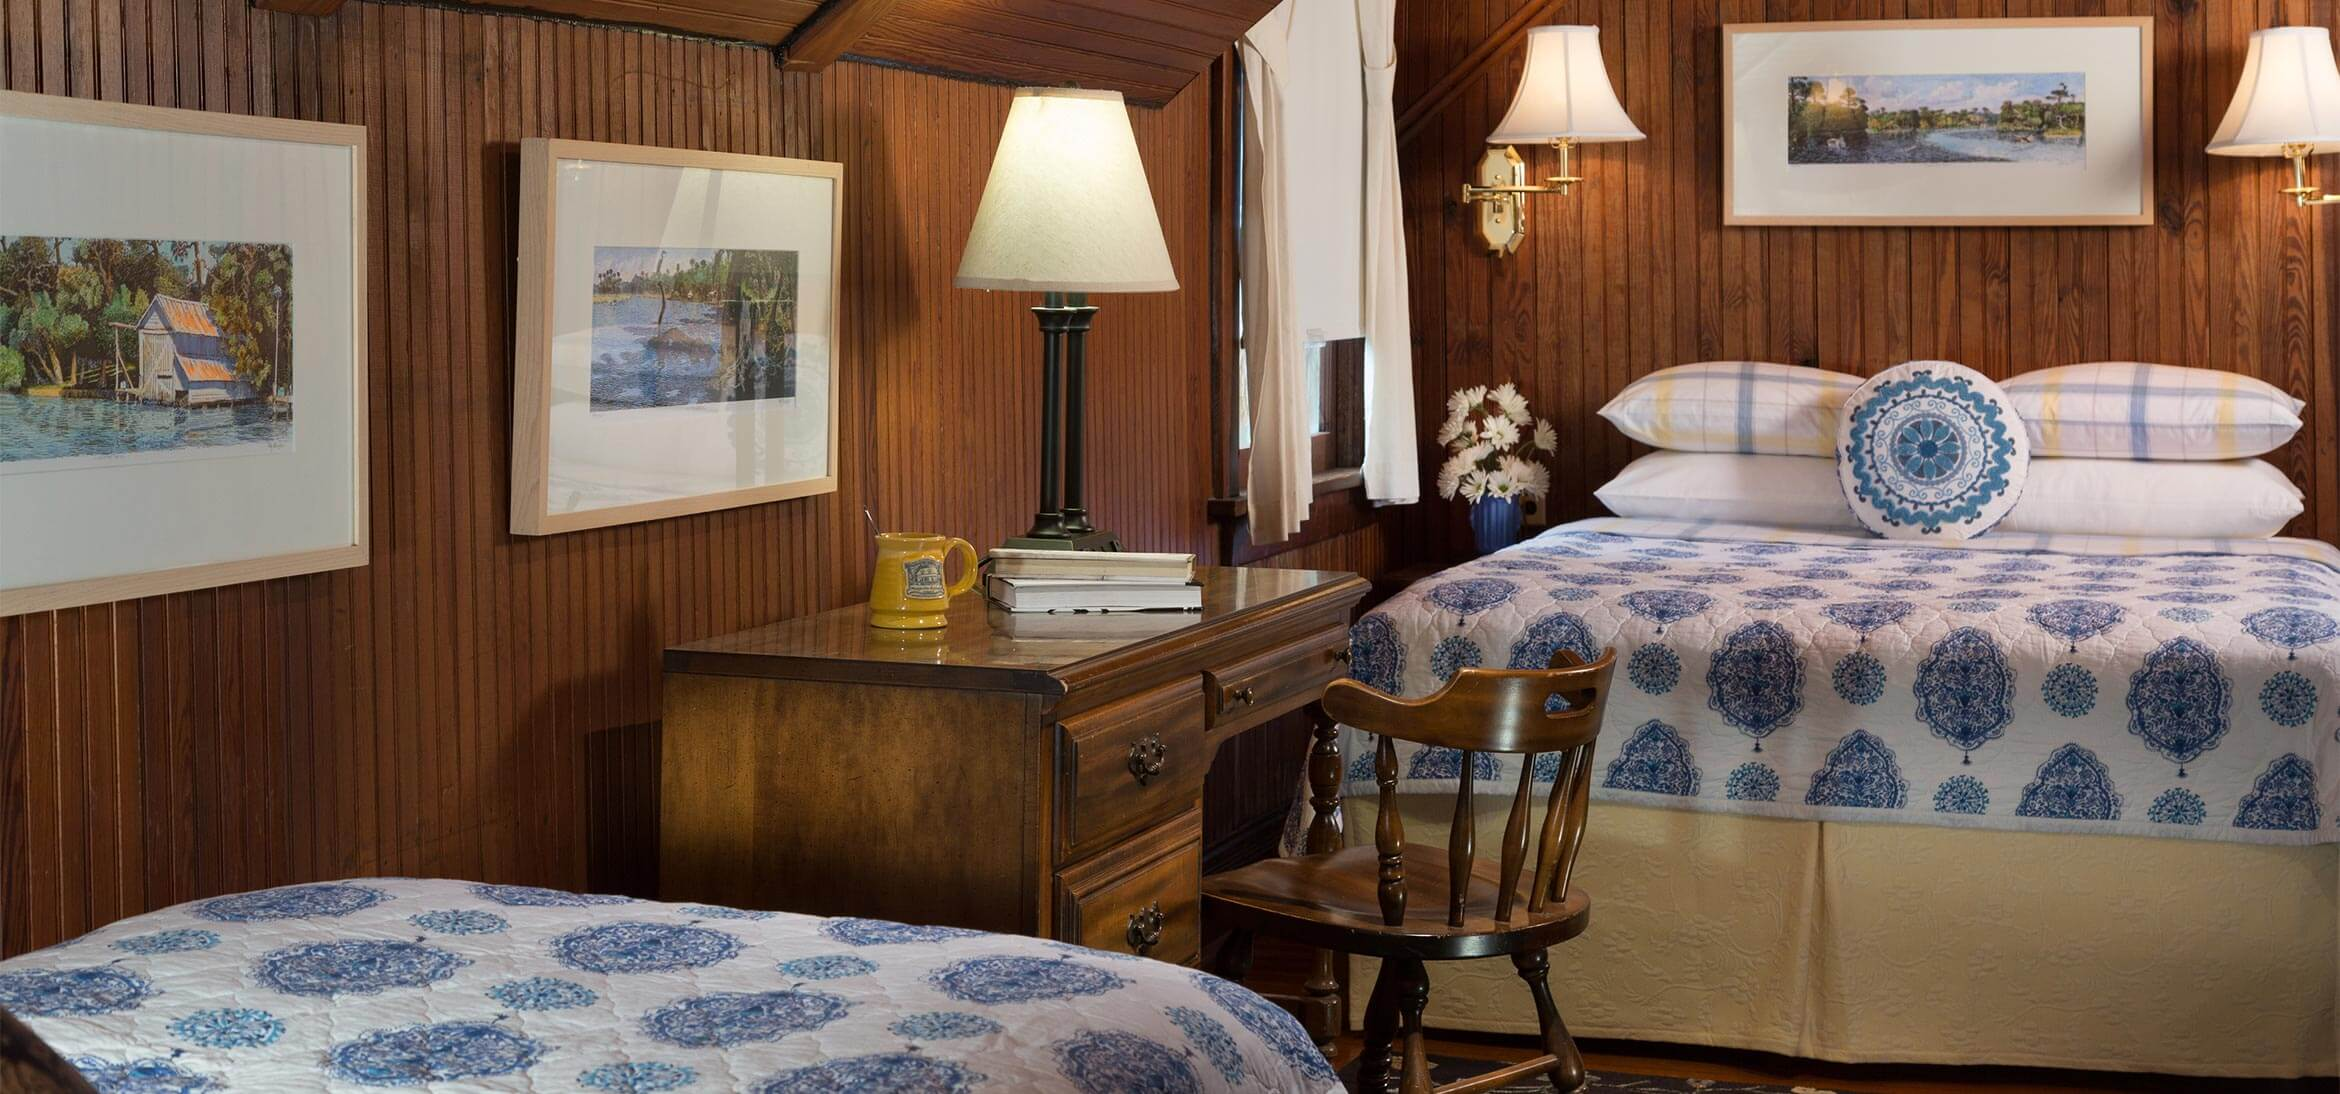 Cowen Room bed and desk at our Magnolia Springs B&B